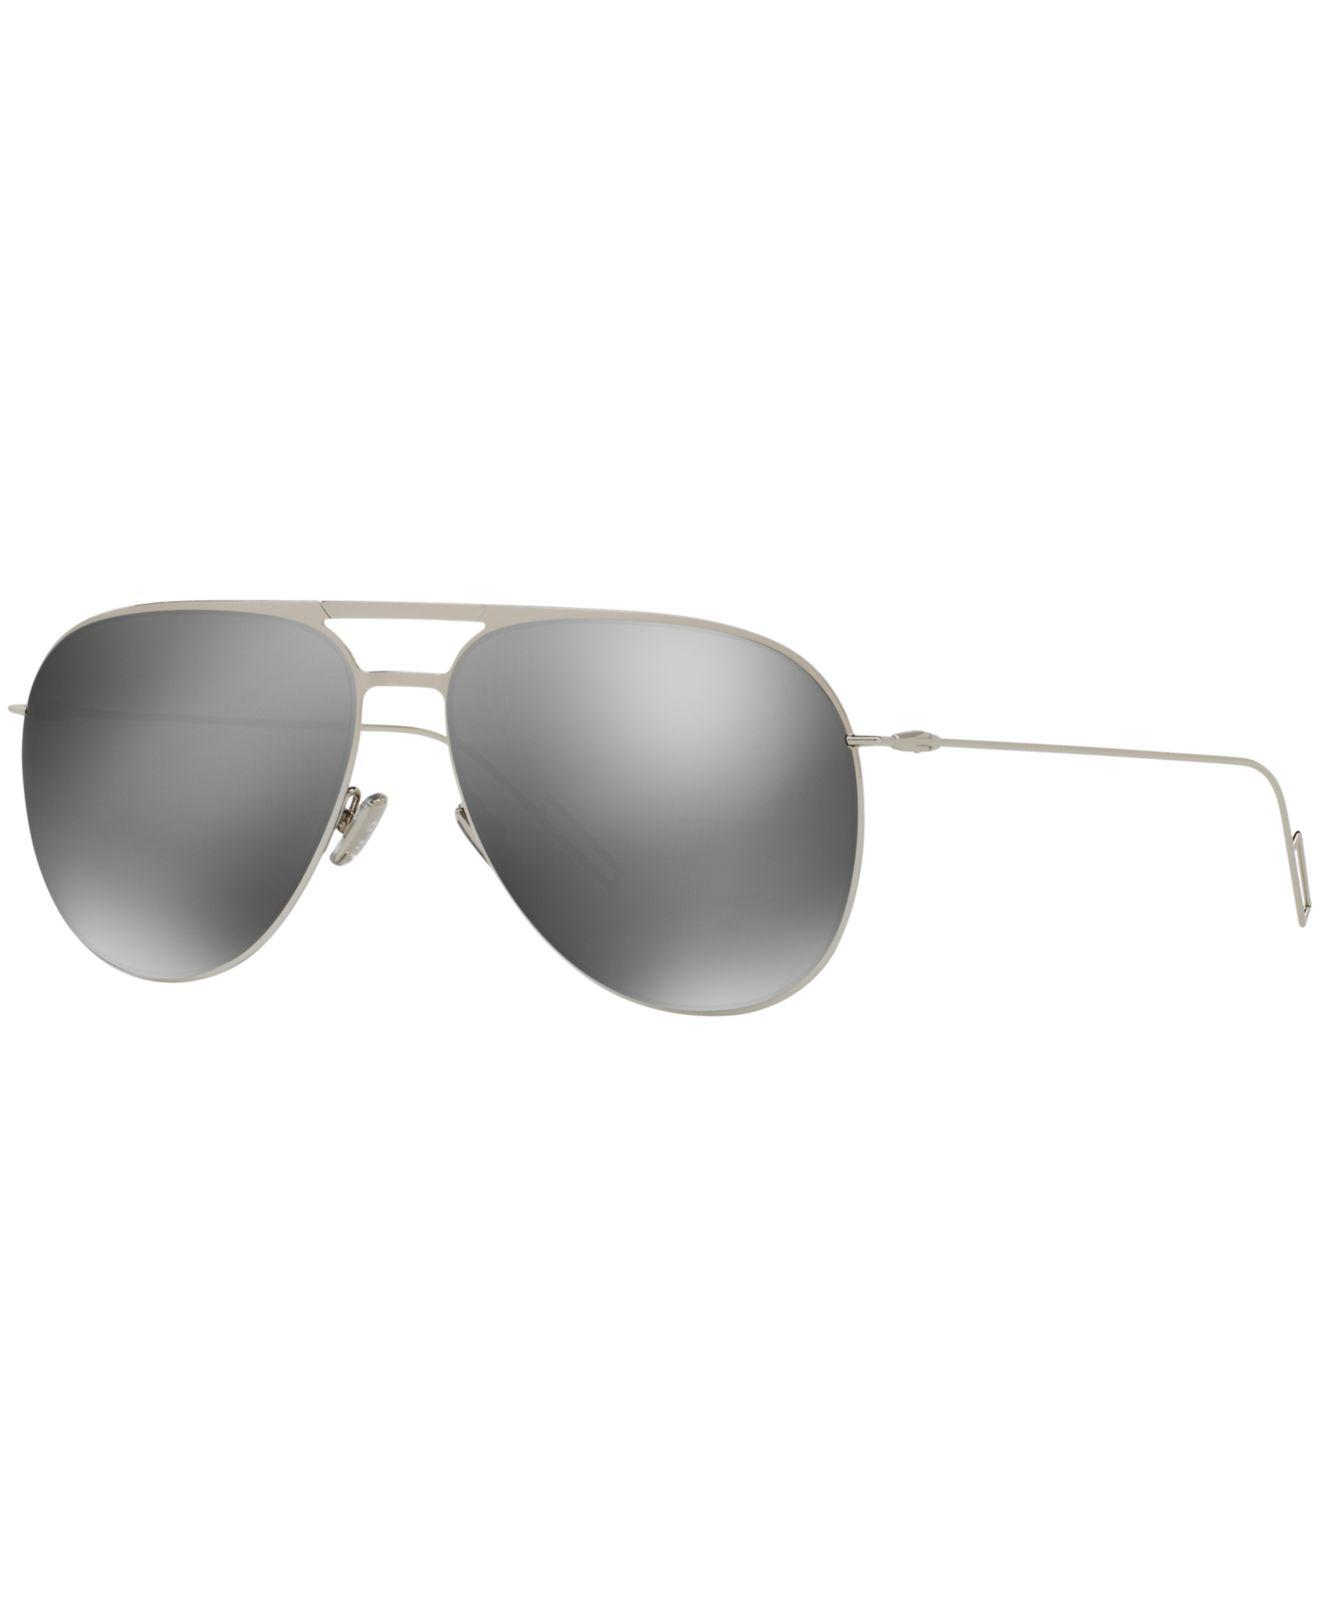 d55ba9d4ab6a3 Dior. Men s Metallic Homme Sunglasses ...